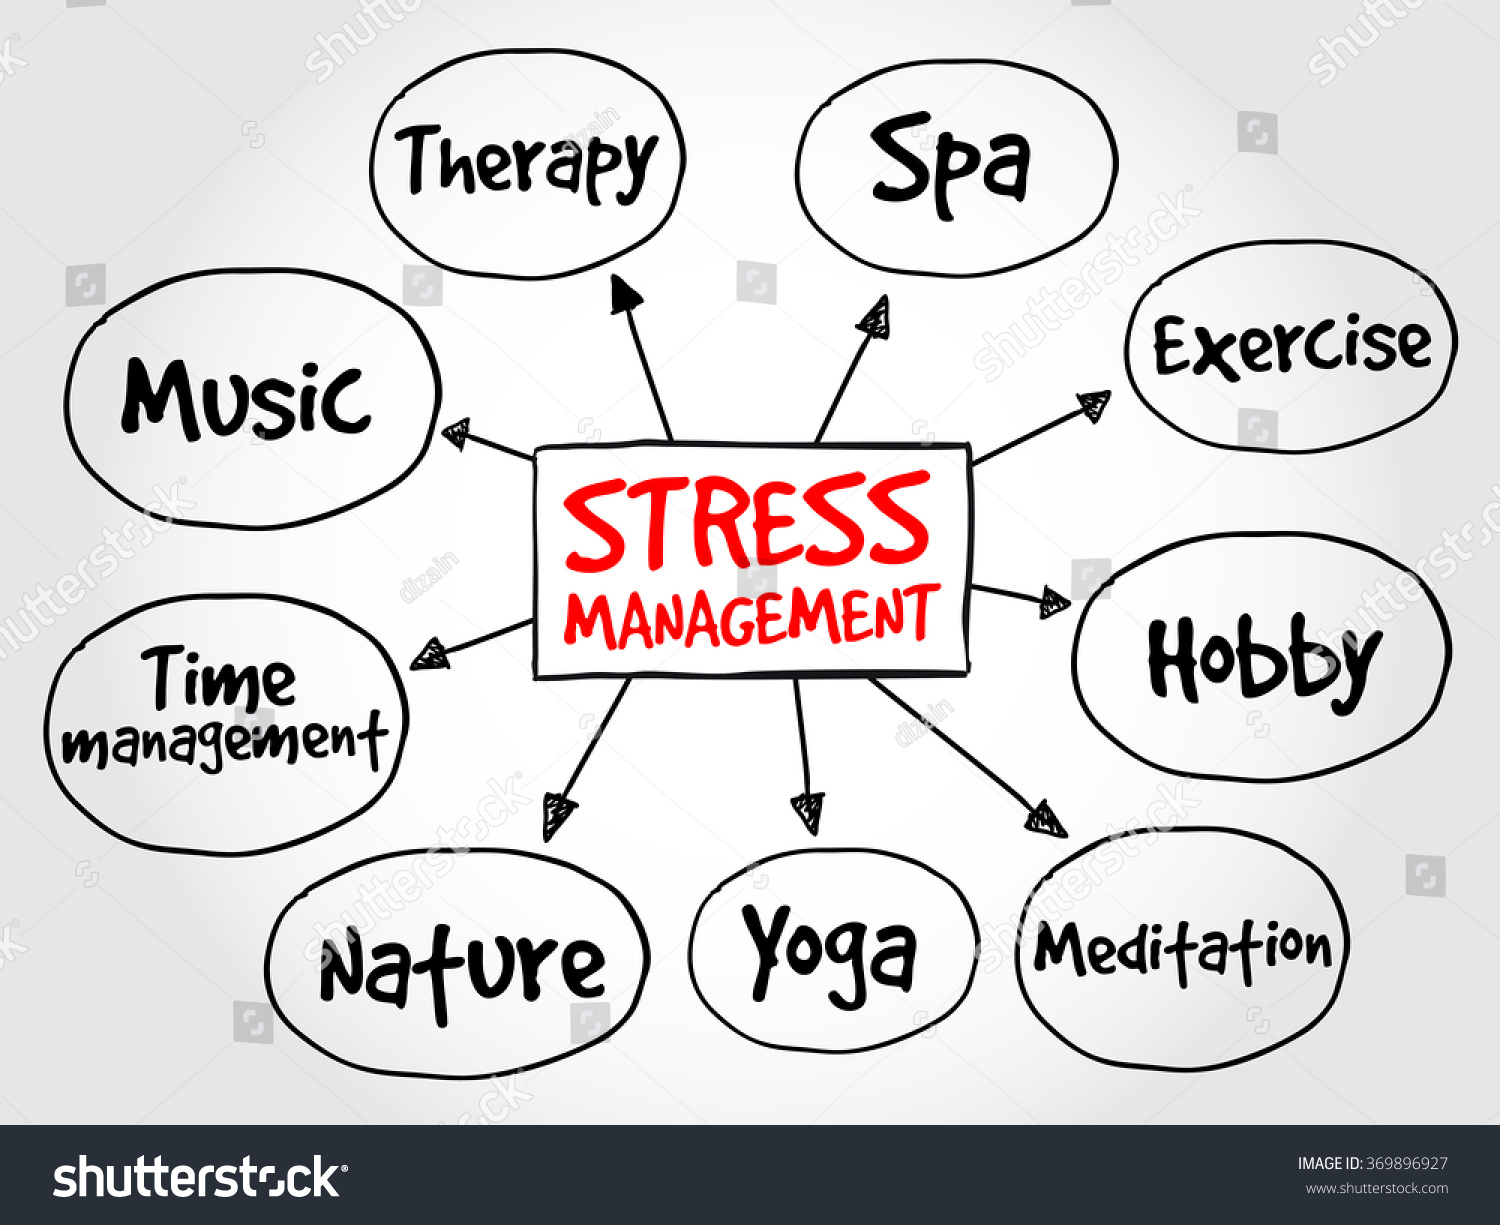 Royalty free stress management mind map health 369896927 stock stress management mind map health concept diagram 369896927 ccuart Gallery